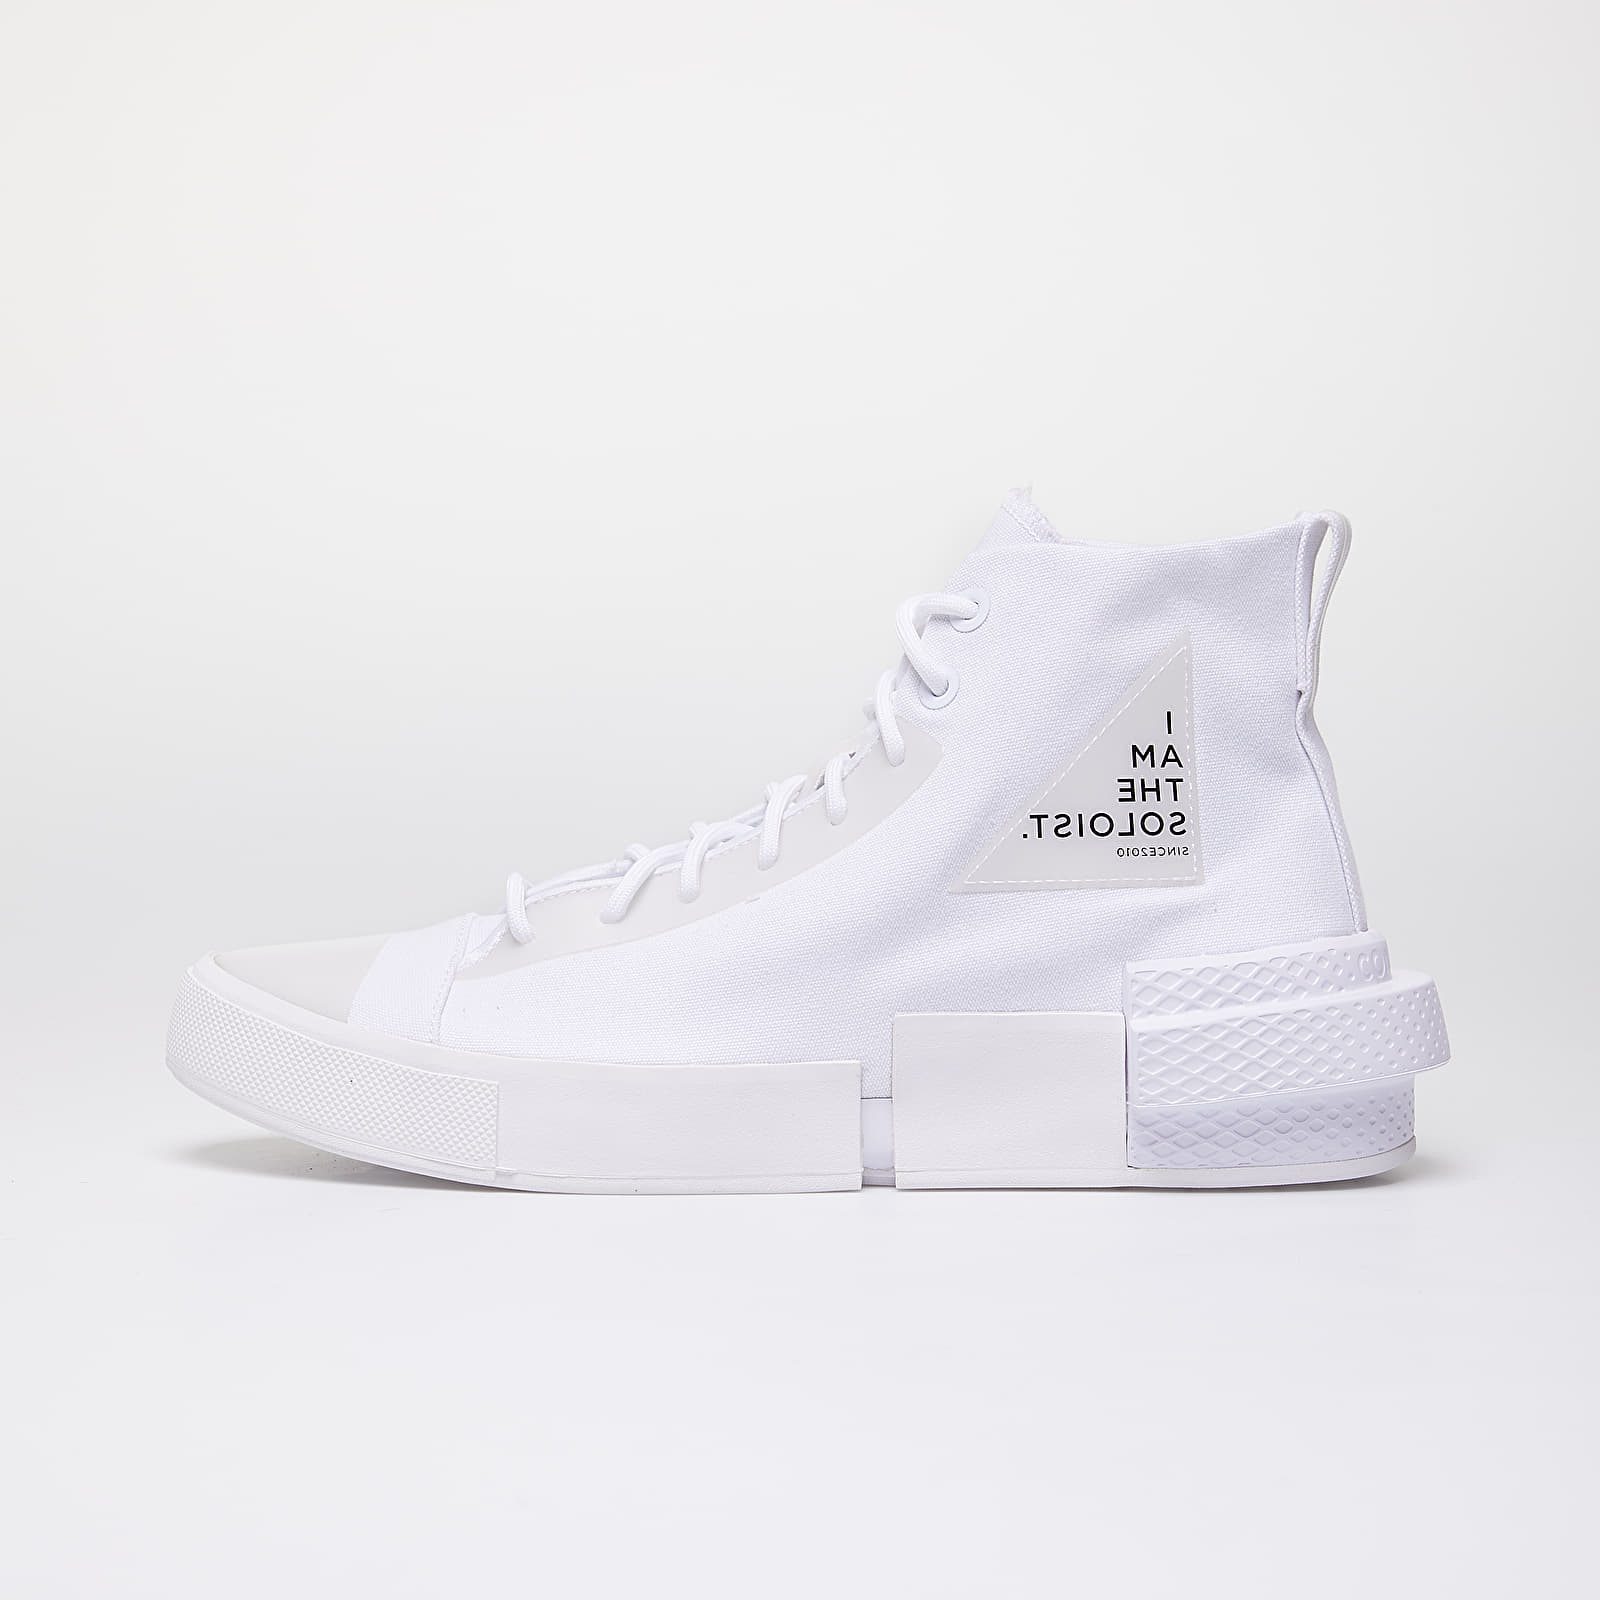 Converse x The Soloist All Star Disrupt CX Hi